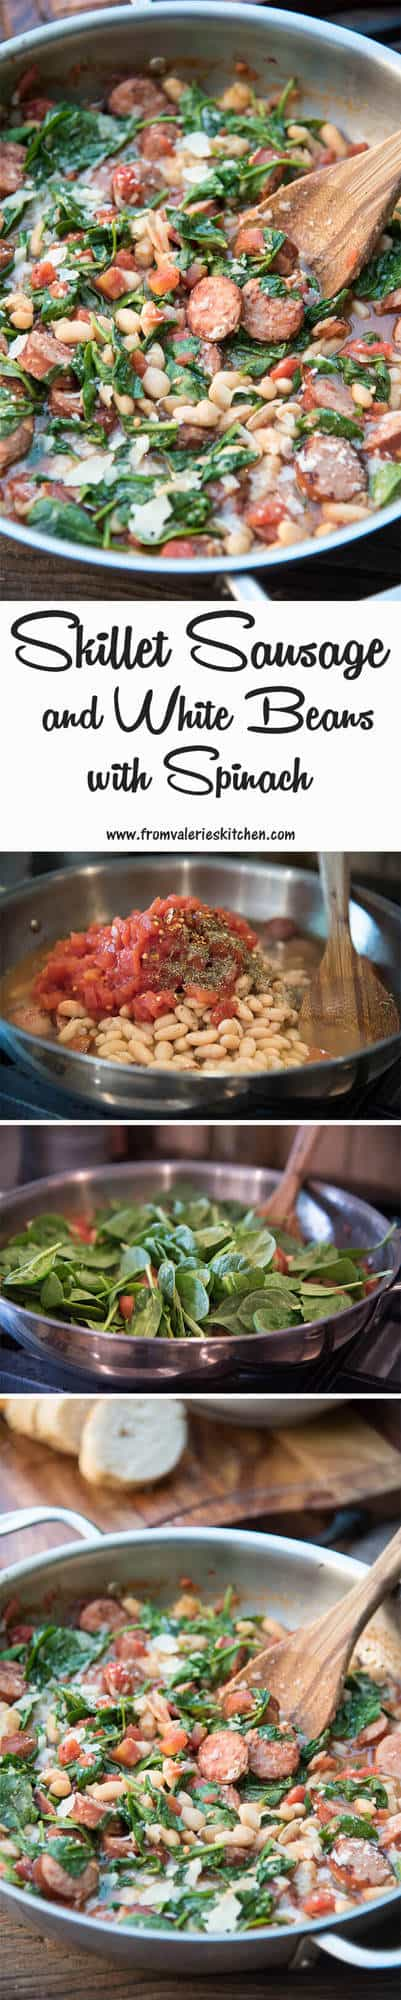 Skillet Sausage and White Beans with Spinach